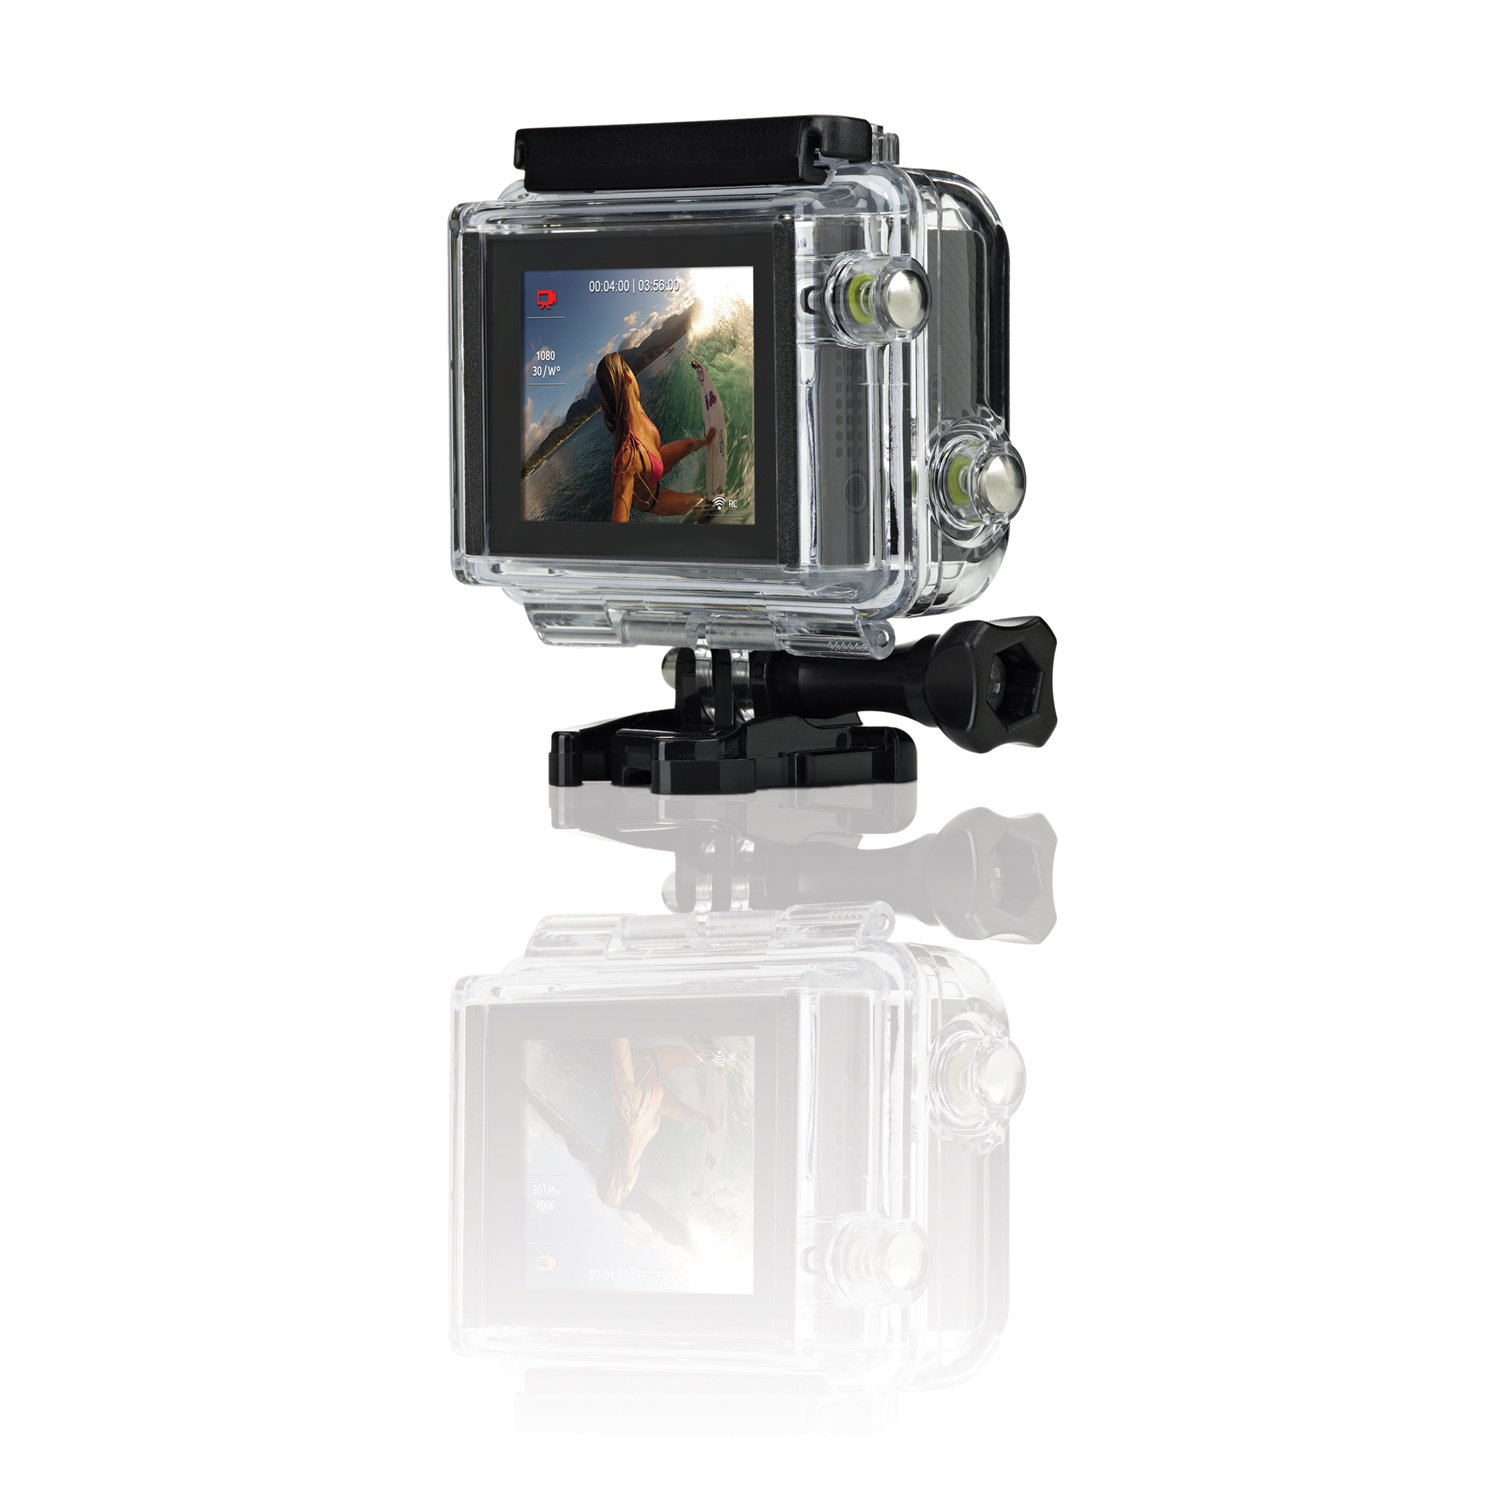 Underwater Photography Camera & Photo ghdonat.com GoPro LCD Touch ...